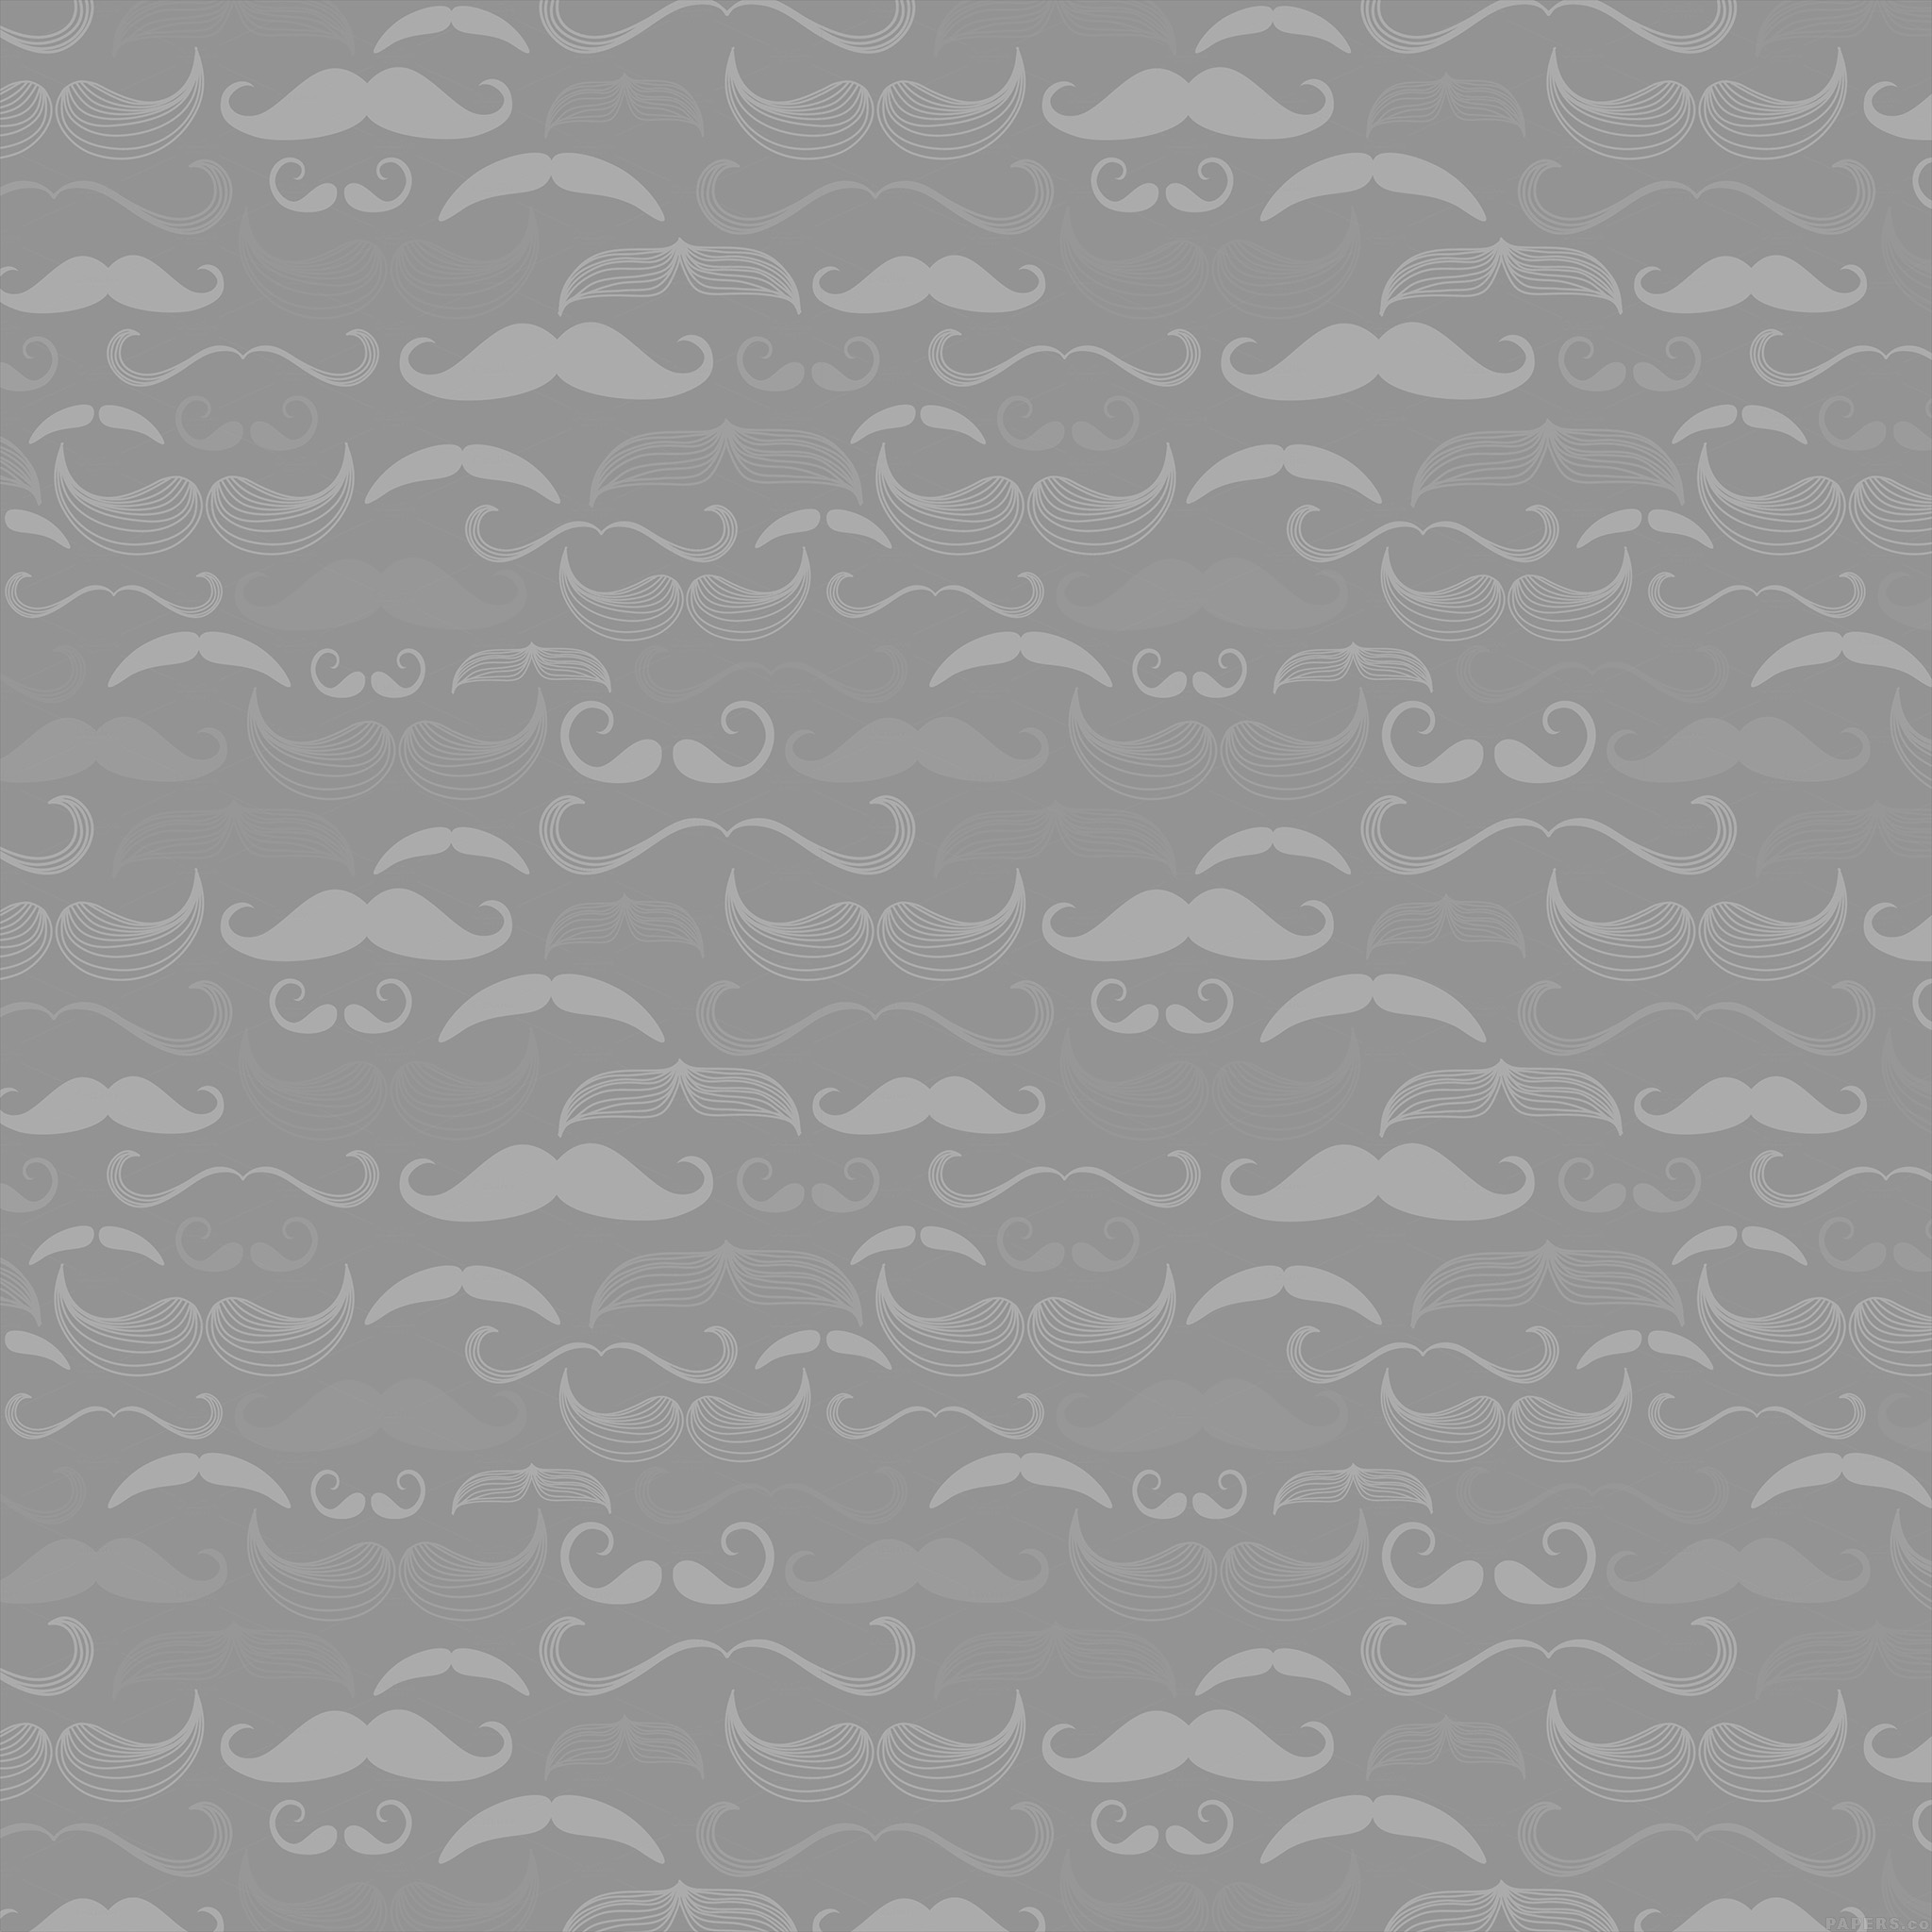 ve73 hipster moustache cute light patterns papers co